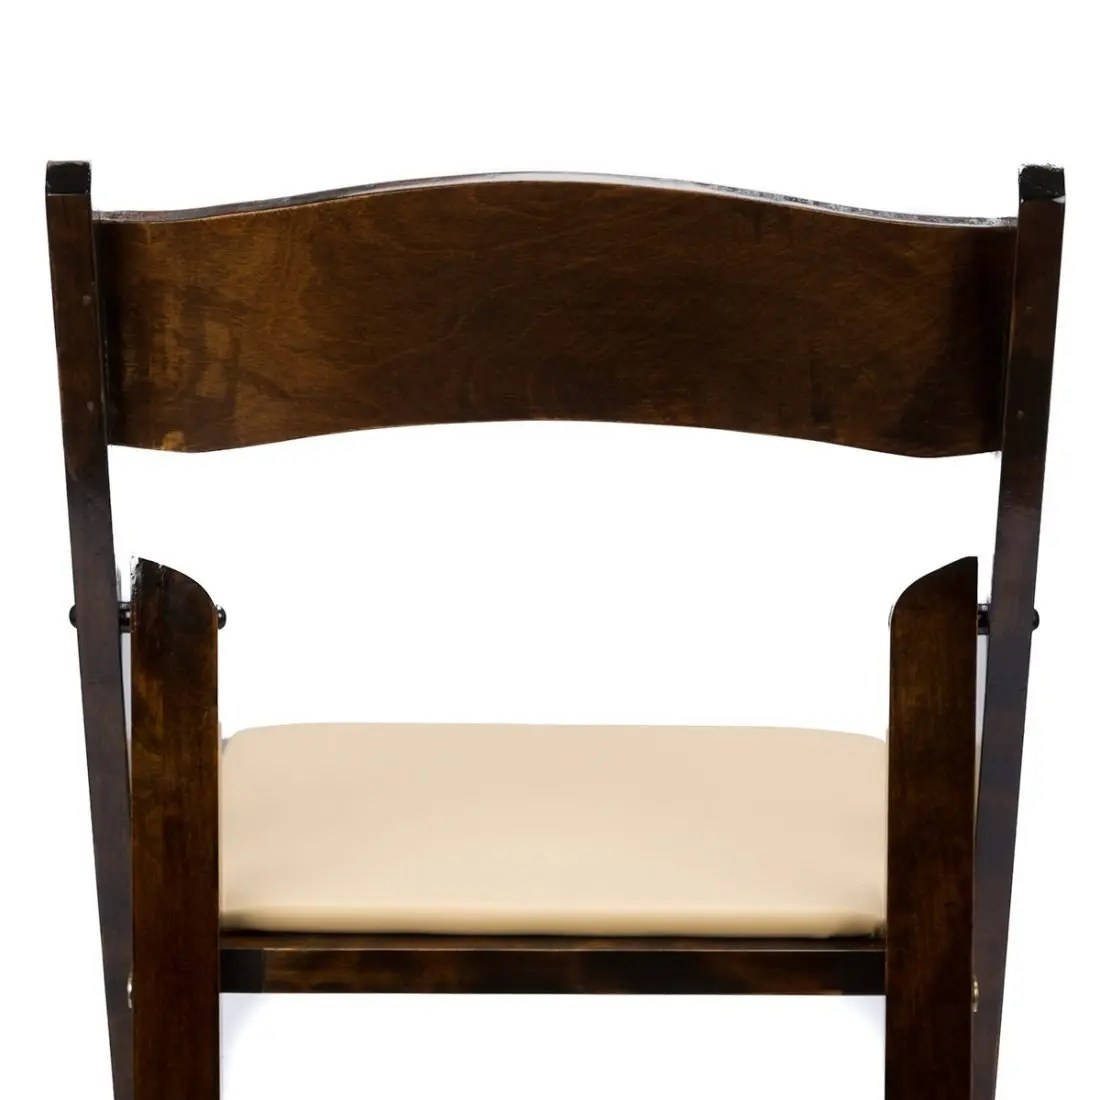 brown wooden folding chairs modern furniture designs fruitwood wood chair with tan seat